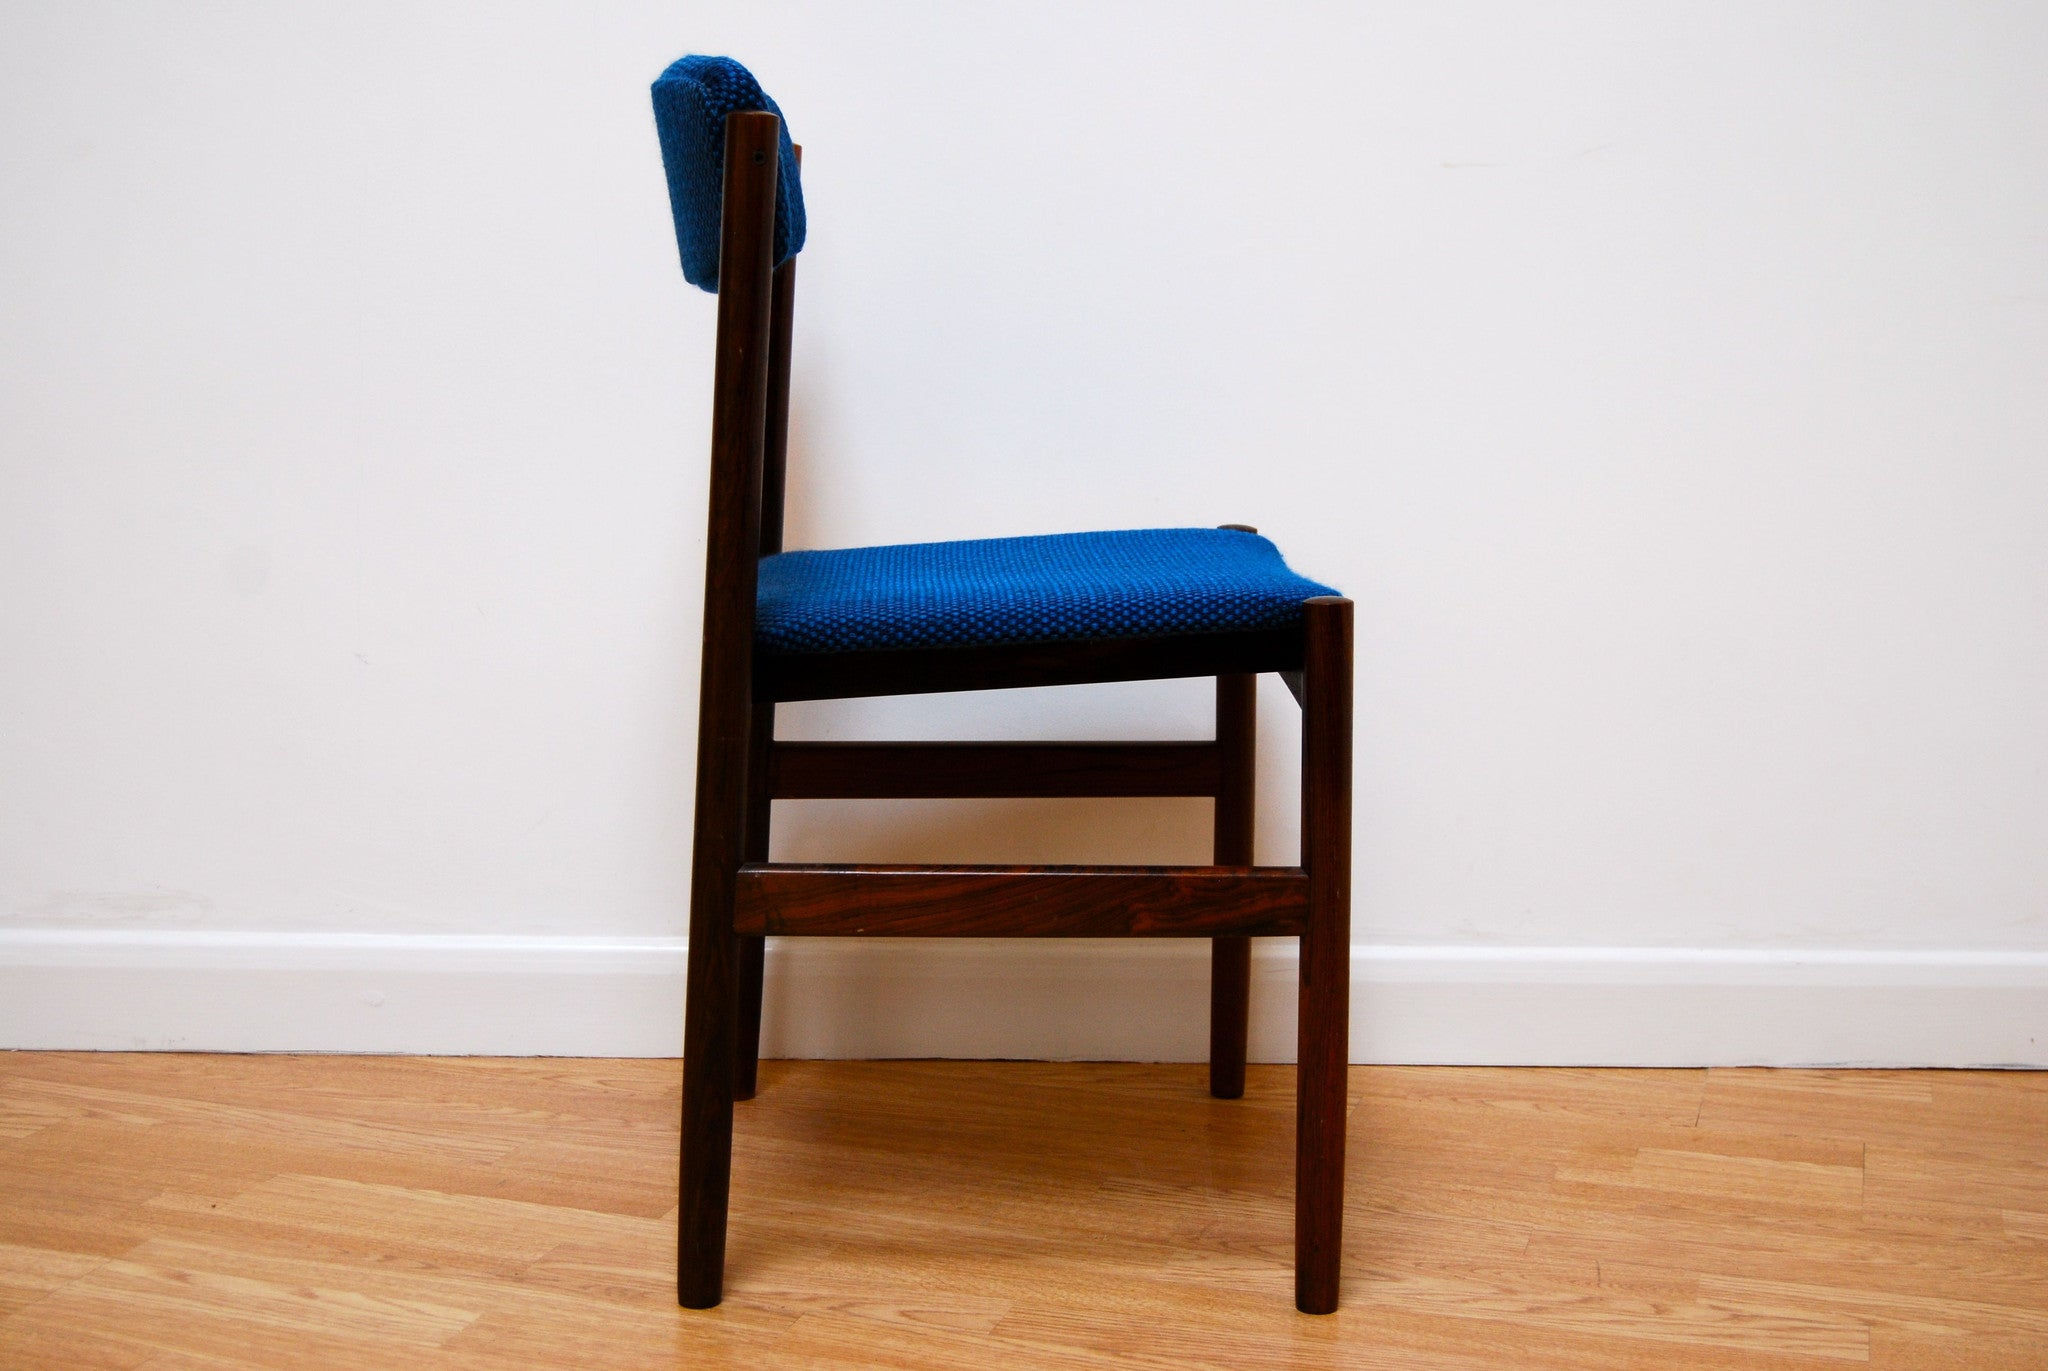 Set of four rosewood chairs with blue upholstery